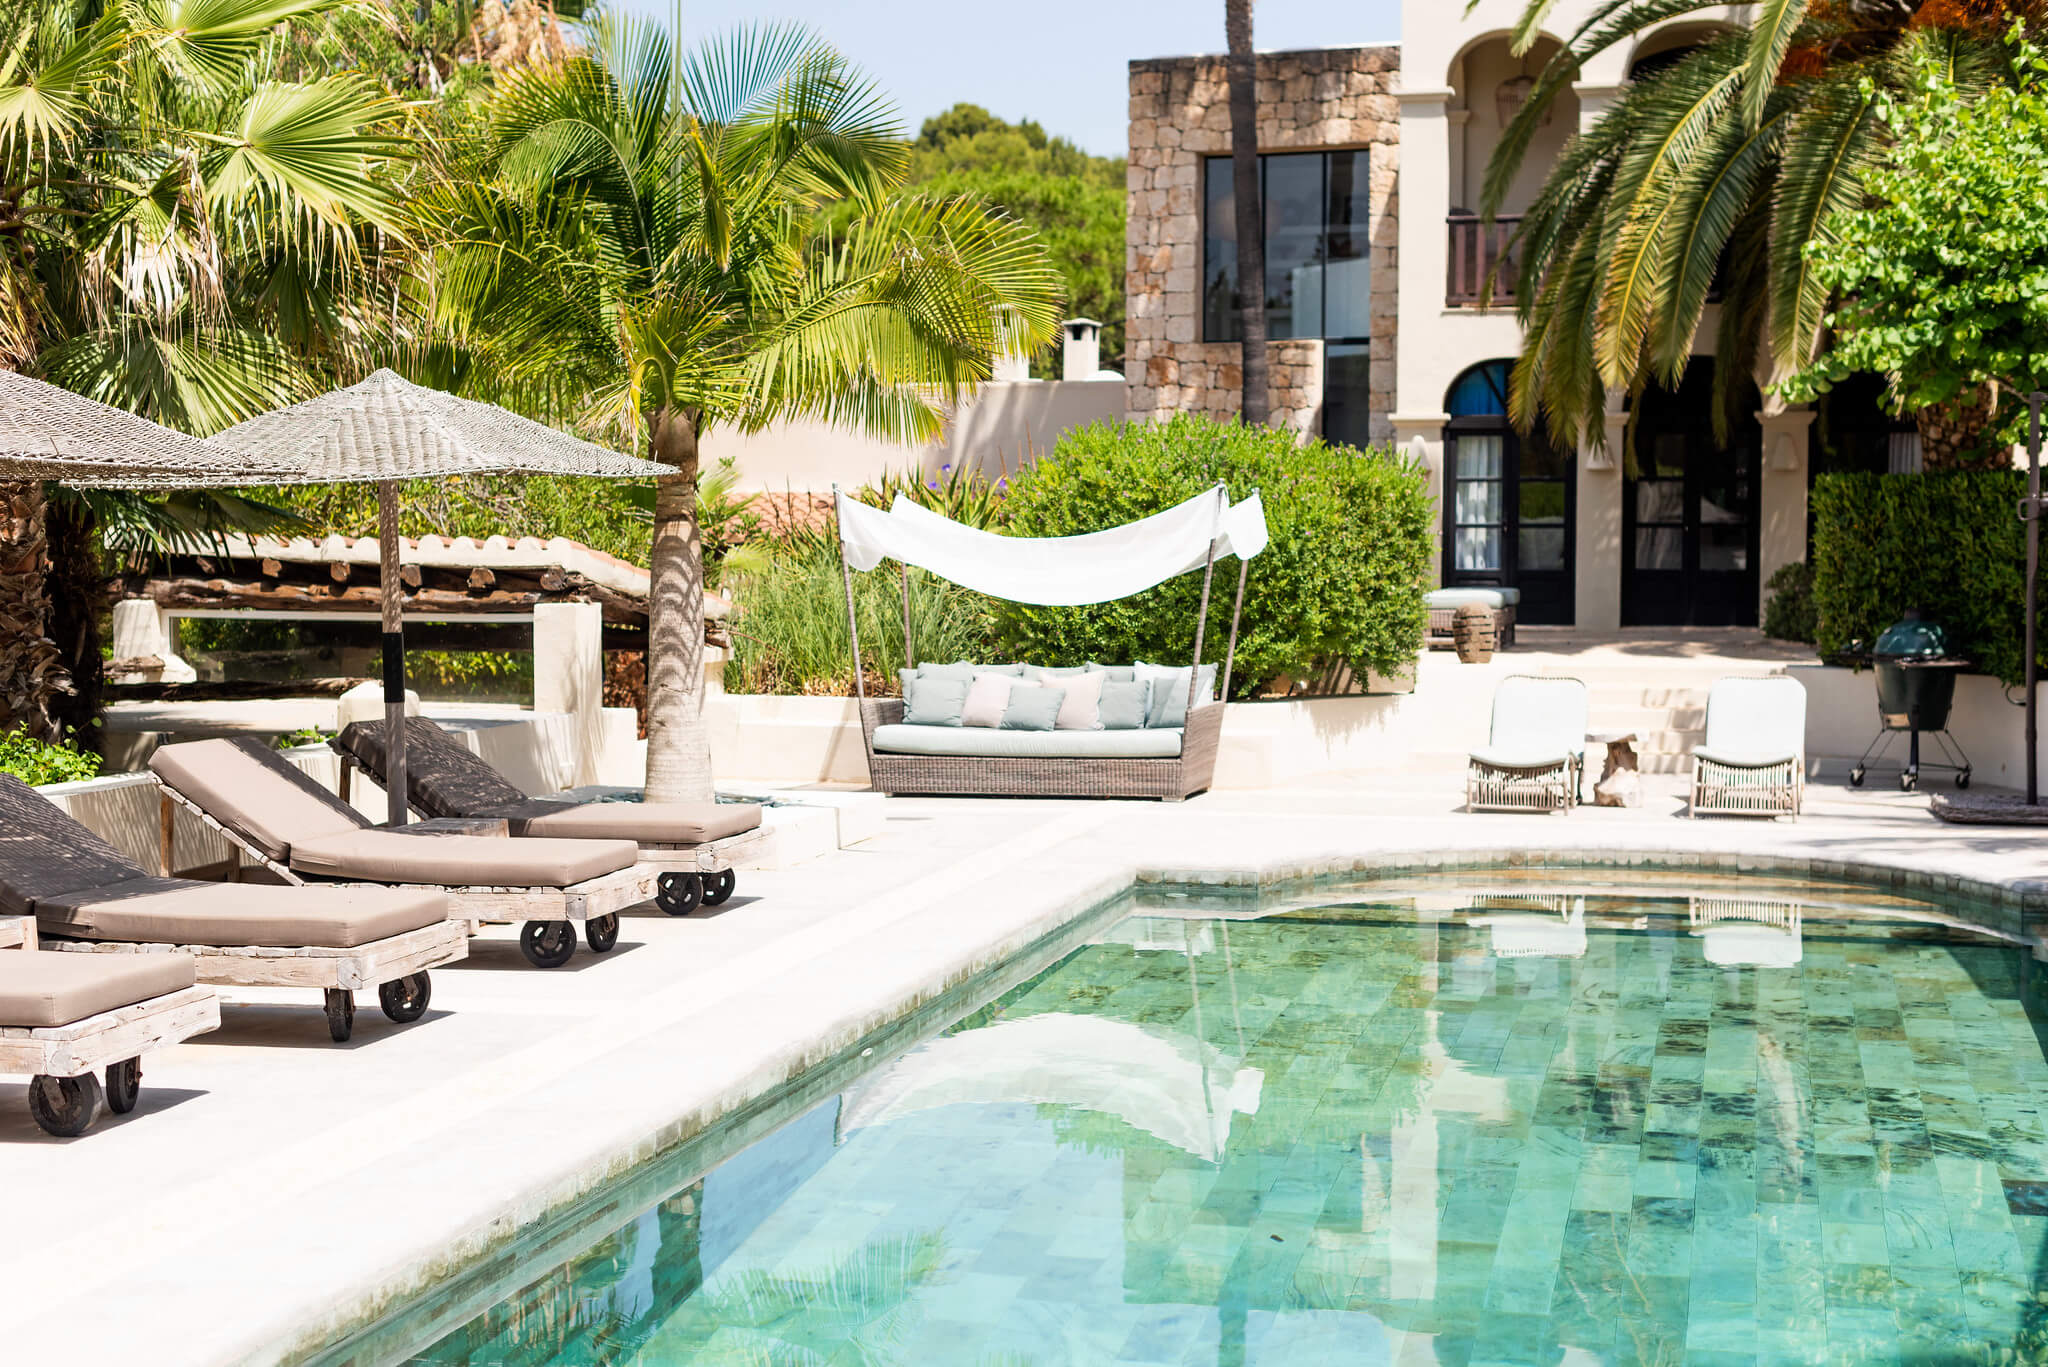 https://www.white-ibiza.com/wp-content/uploads/2020/05/white-ibiza-villas-can-riviere-exterior-view-to-house.jpg